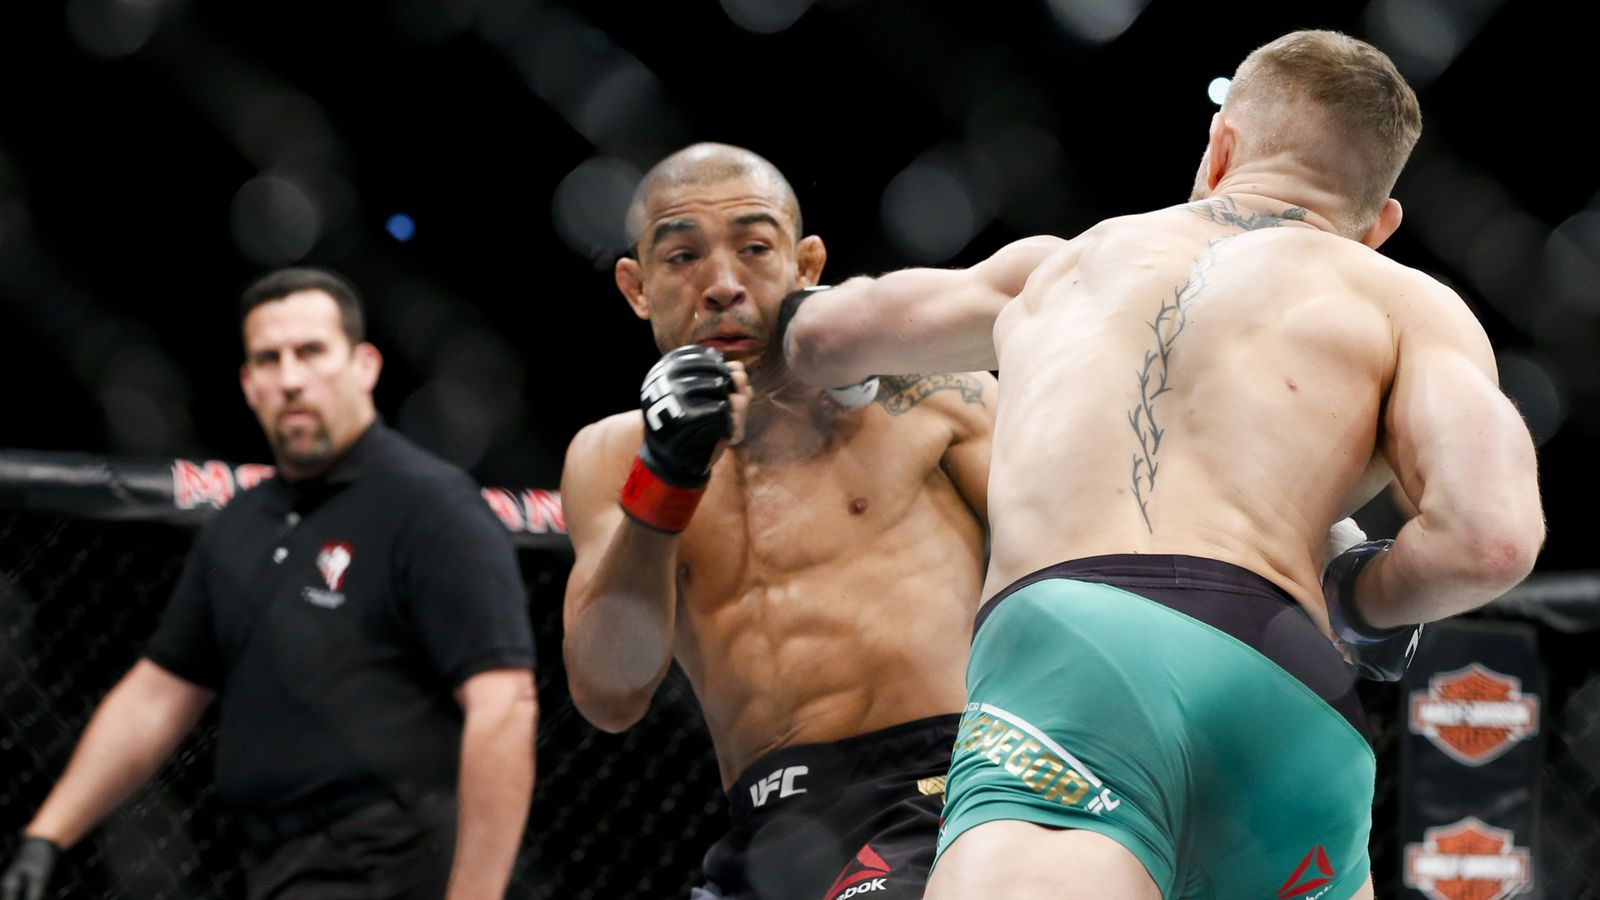 Fightweets: Let Conor McGregor chase two championships - MMA